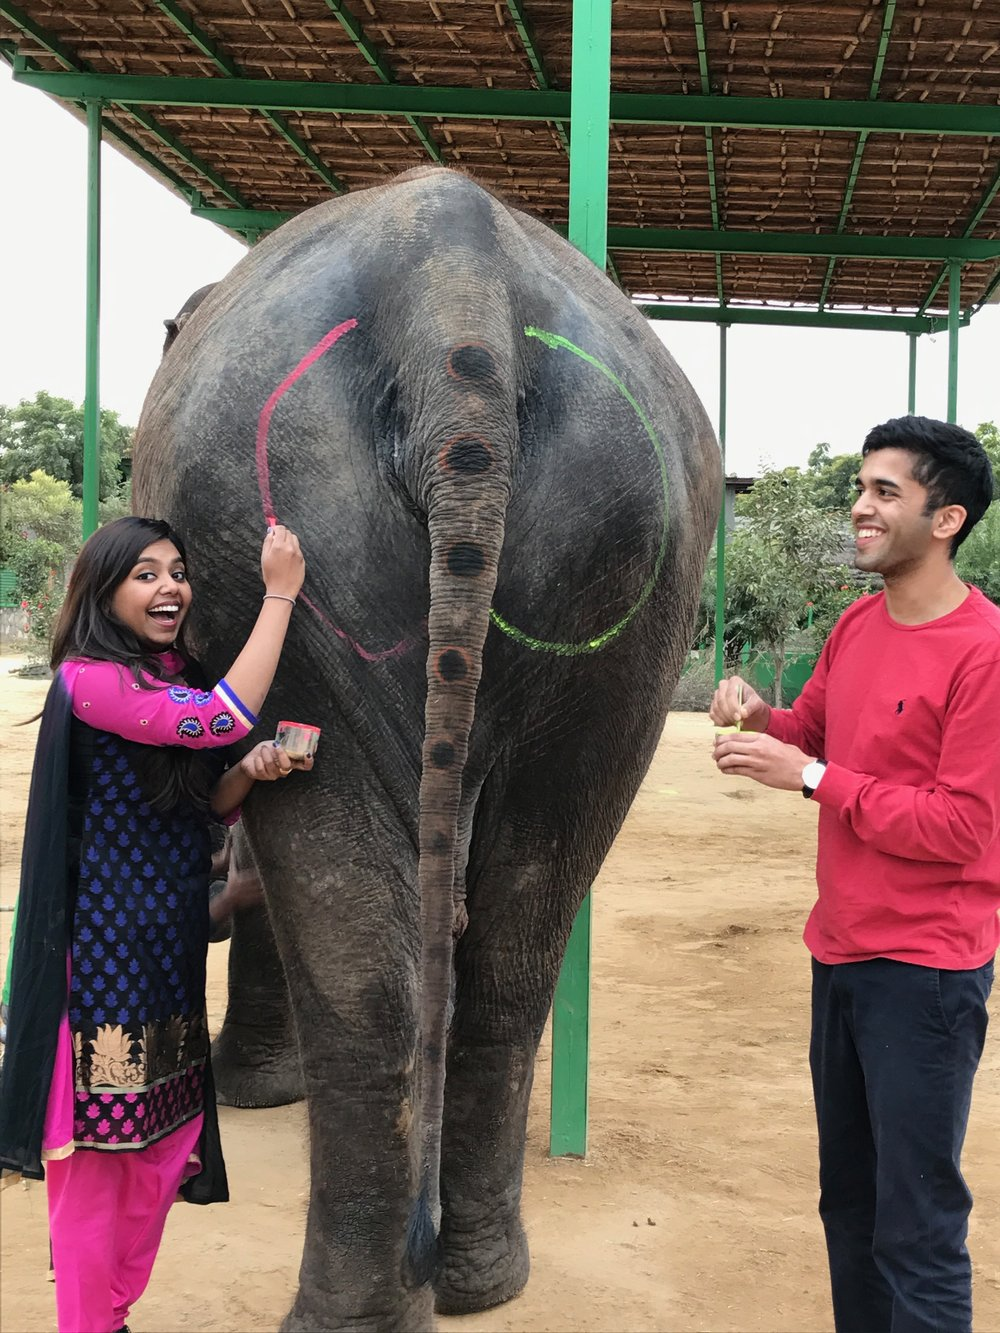 Elephant Village - Jaipur   meet chanda, a beautiful 28 year old indian elephant from Jaipur. jeffrey and I spent quite some time with her. we first got to know her by petting her and showering her with hugs and kisses! we fed her bamboo, painted her nails and butt (lol), went on a very relaxing 15-20 minute ride, and wrapped up our elephant experience by giving her some water to drink.   You might be wondering why we painted Chanda's butt. When i was a little girl, I asked daddy how he learned to paint. like any girl would, i believed him when he told me the first time he painted was on an elephant's butt. 23 years later, i came to realize he was joking! And with that, this picture was taken in honor of me believing his story (all these years).